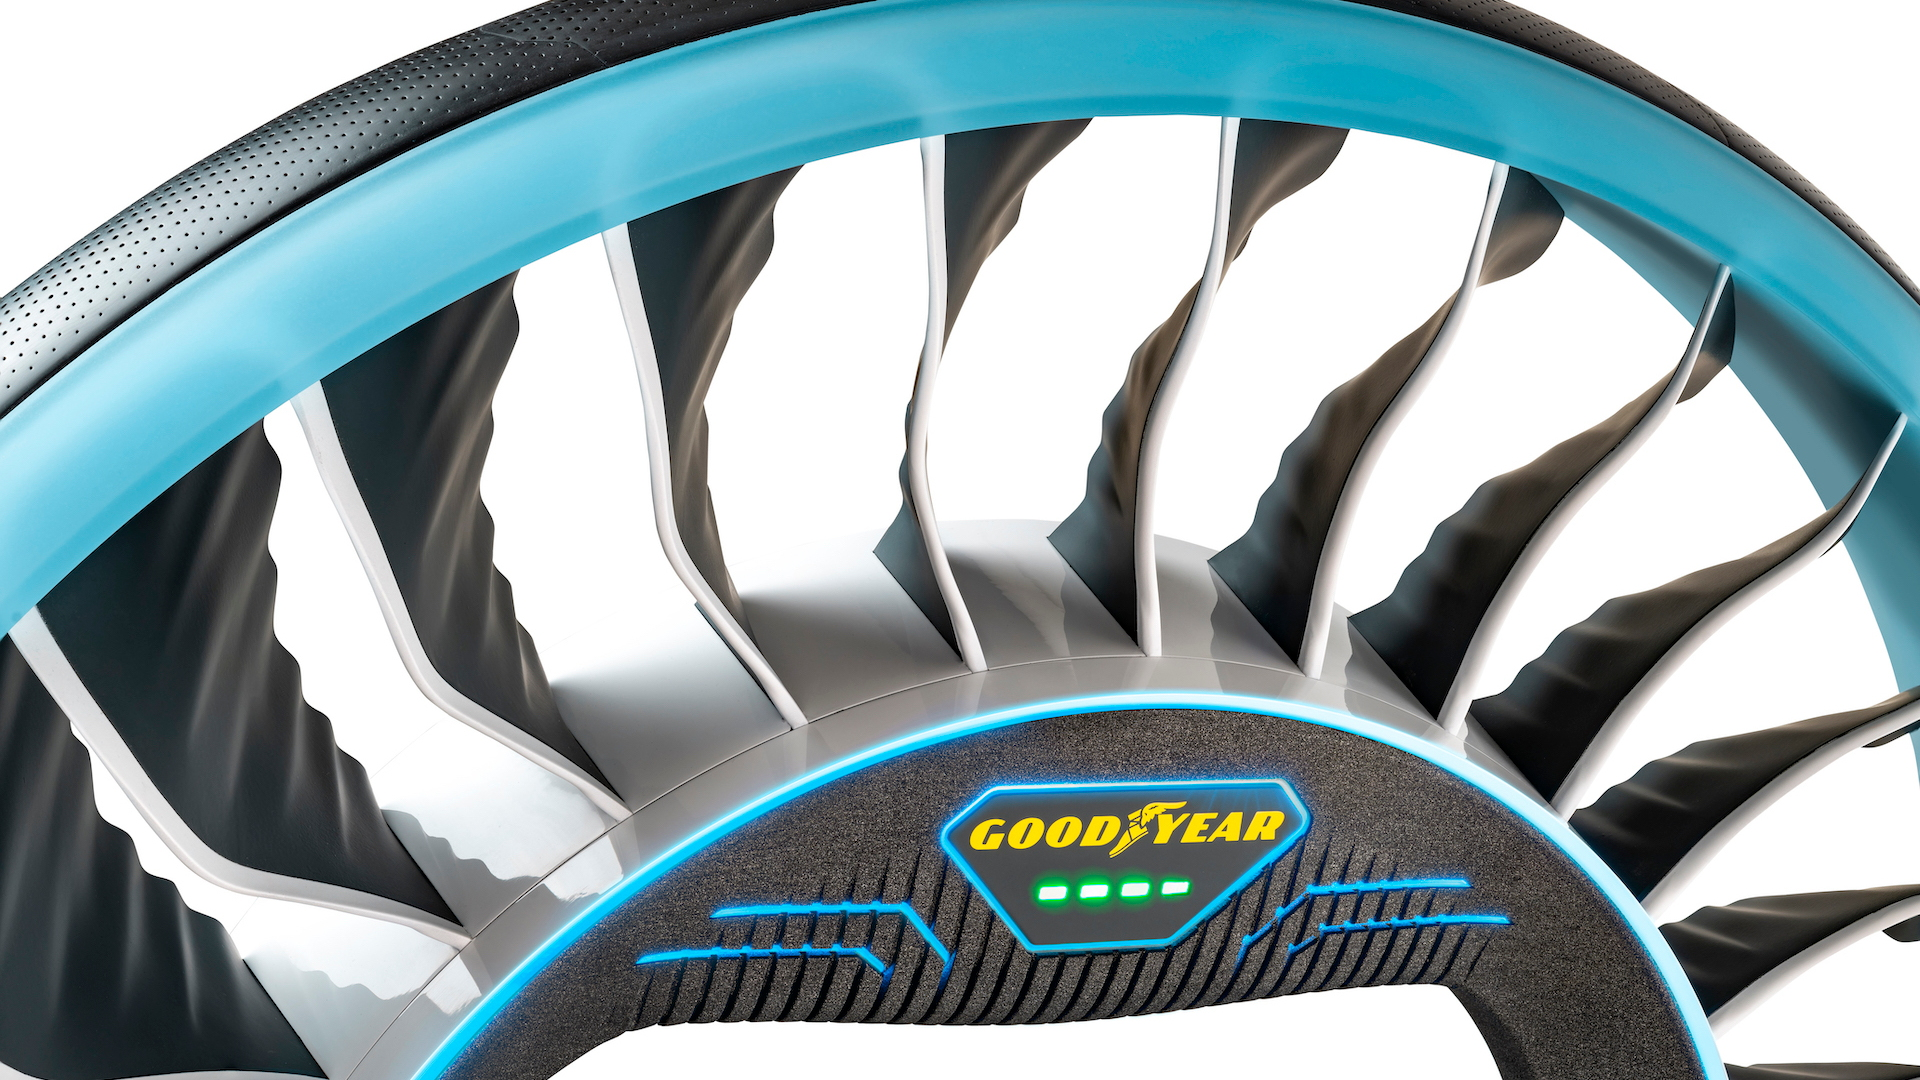 Goodyear has designed a tire that could help cars fly